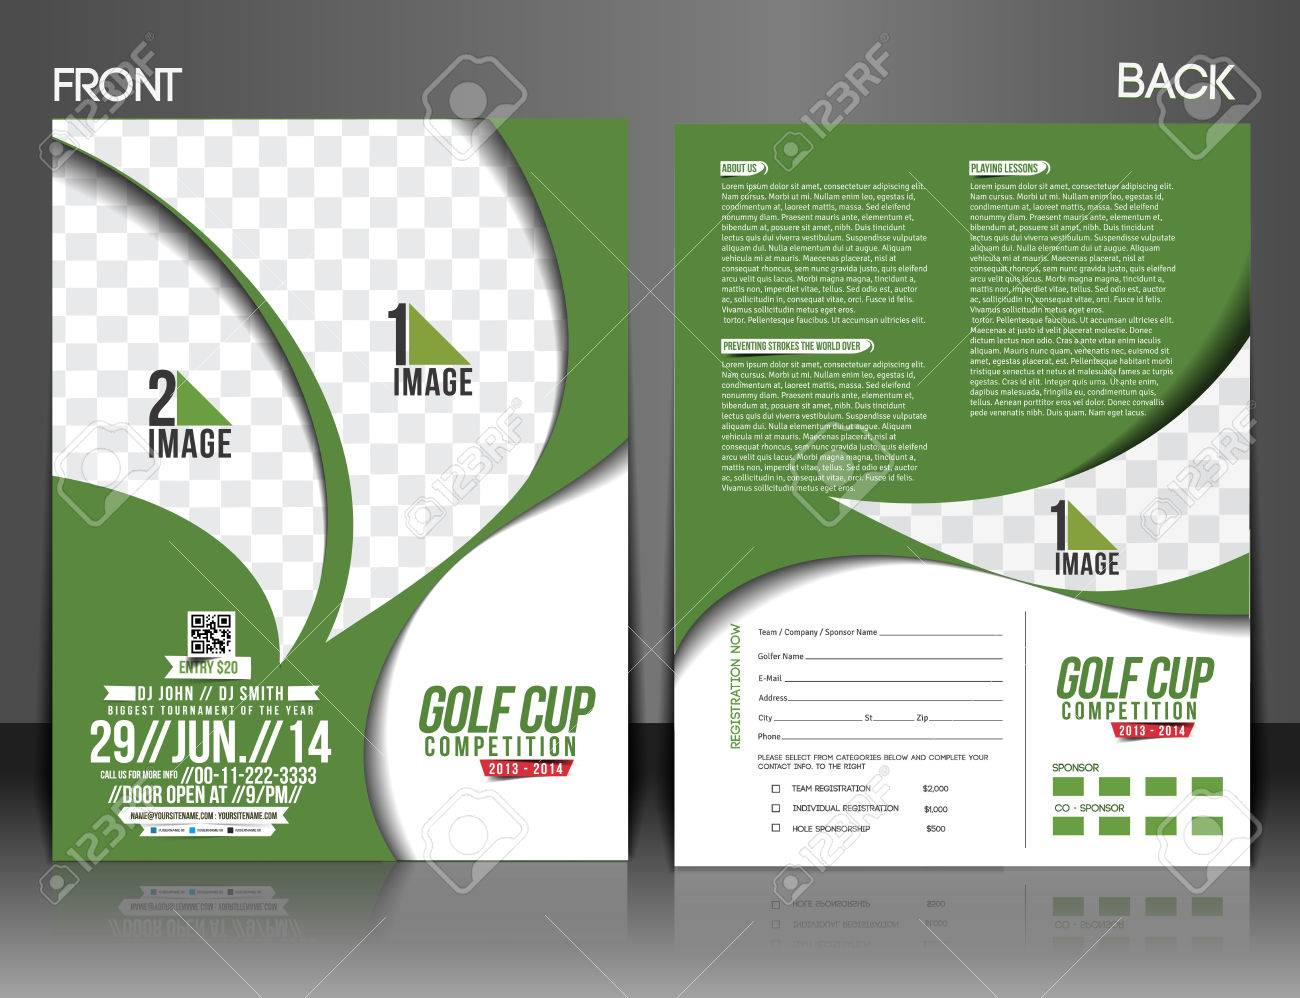 Golf Tournament Front U0026 Back Flyer Template Stock Vector   38329335